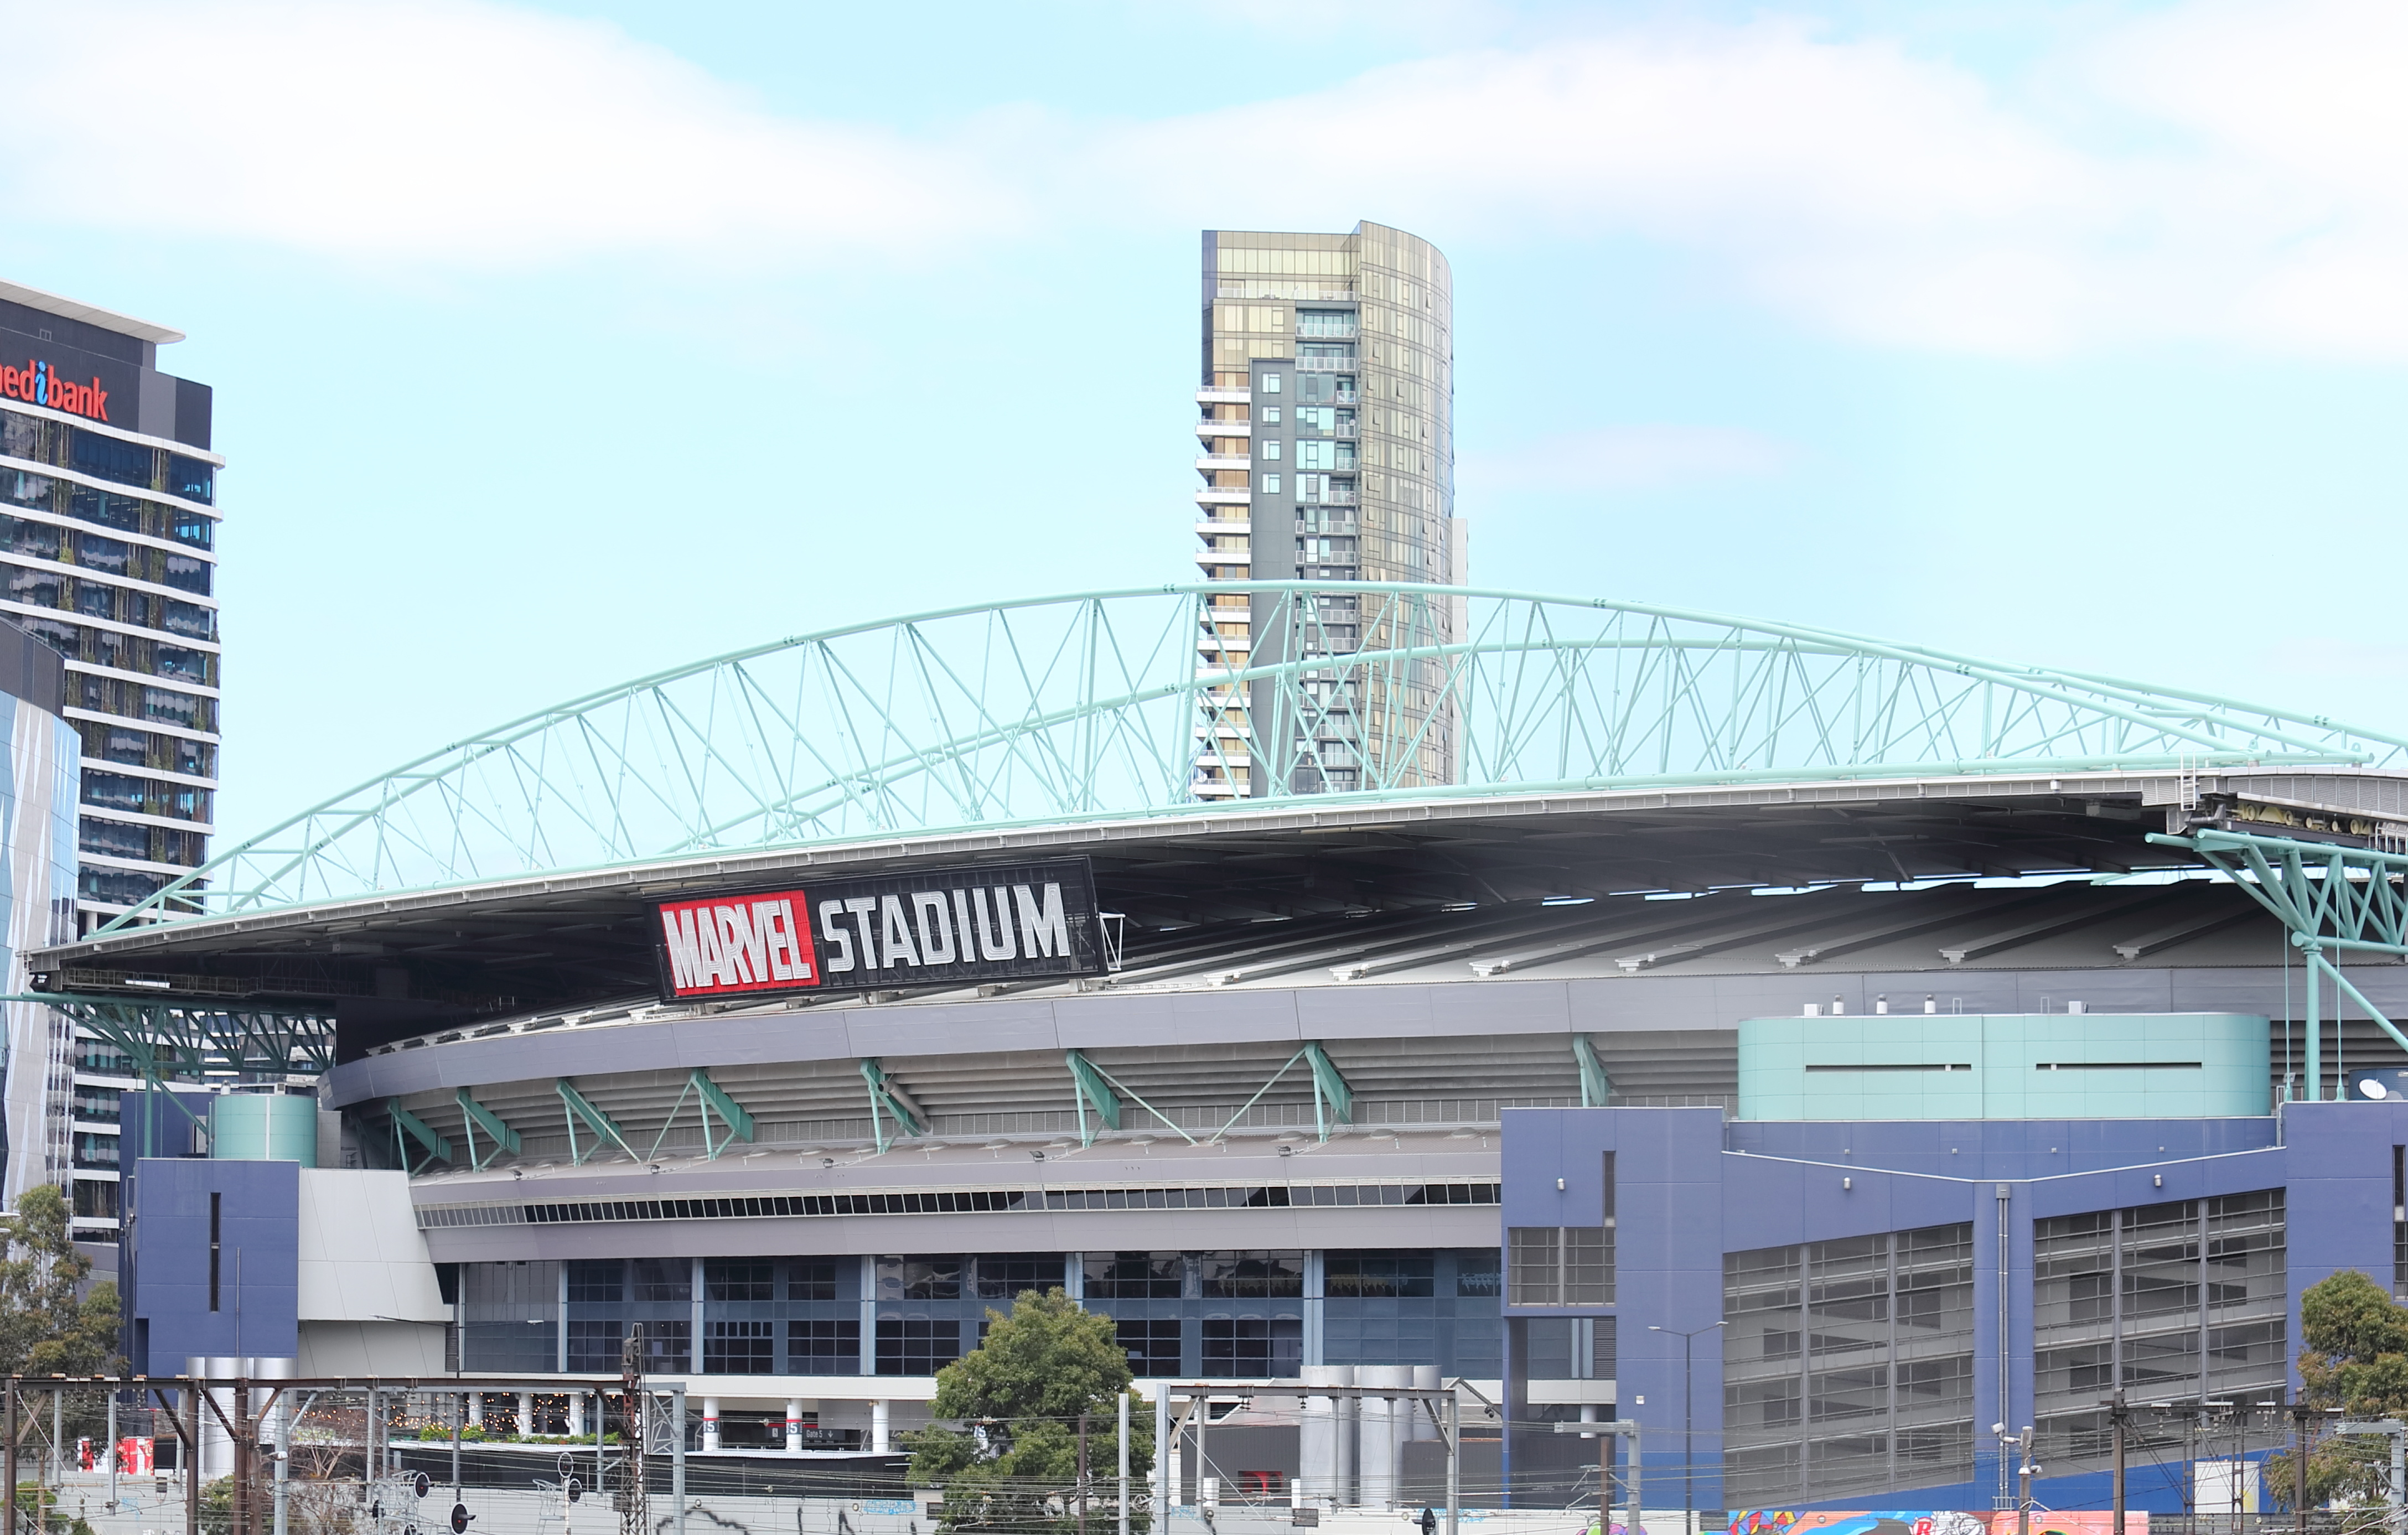 'We haven't found a balance': Marvel Stadium pledges to review security presence at matches